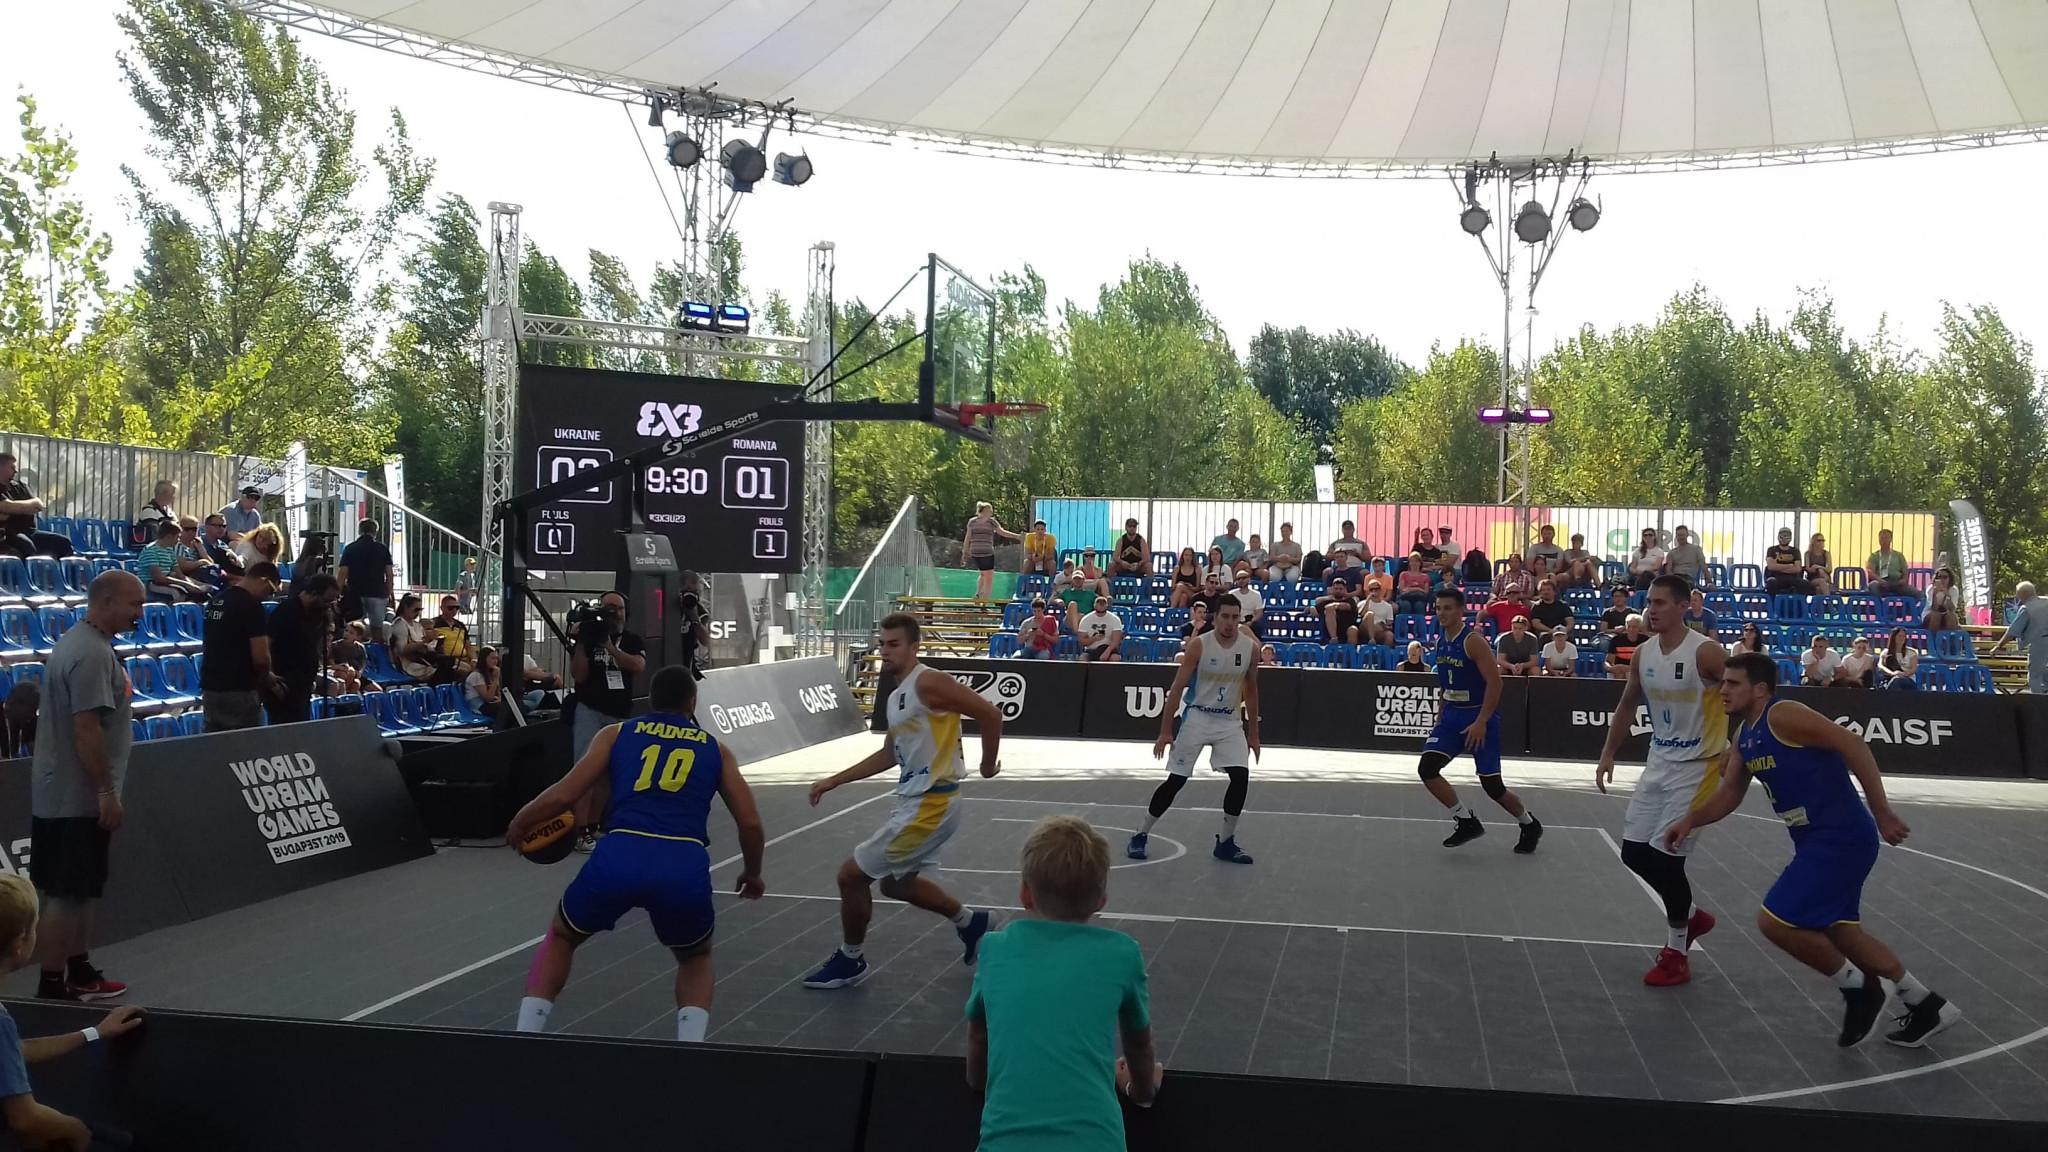 Pool matches in 3x3 basketball continued throughout the day ©ITG